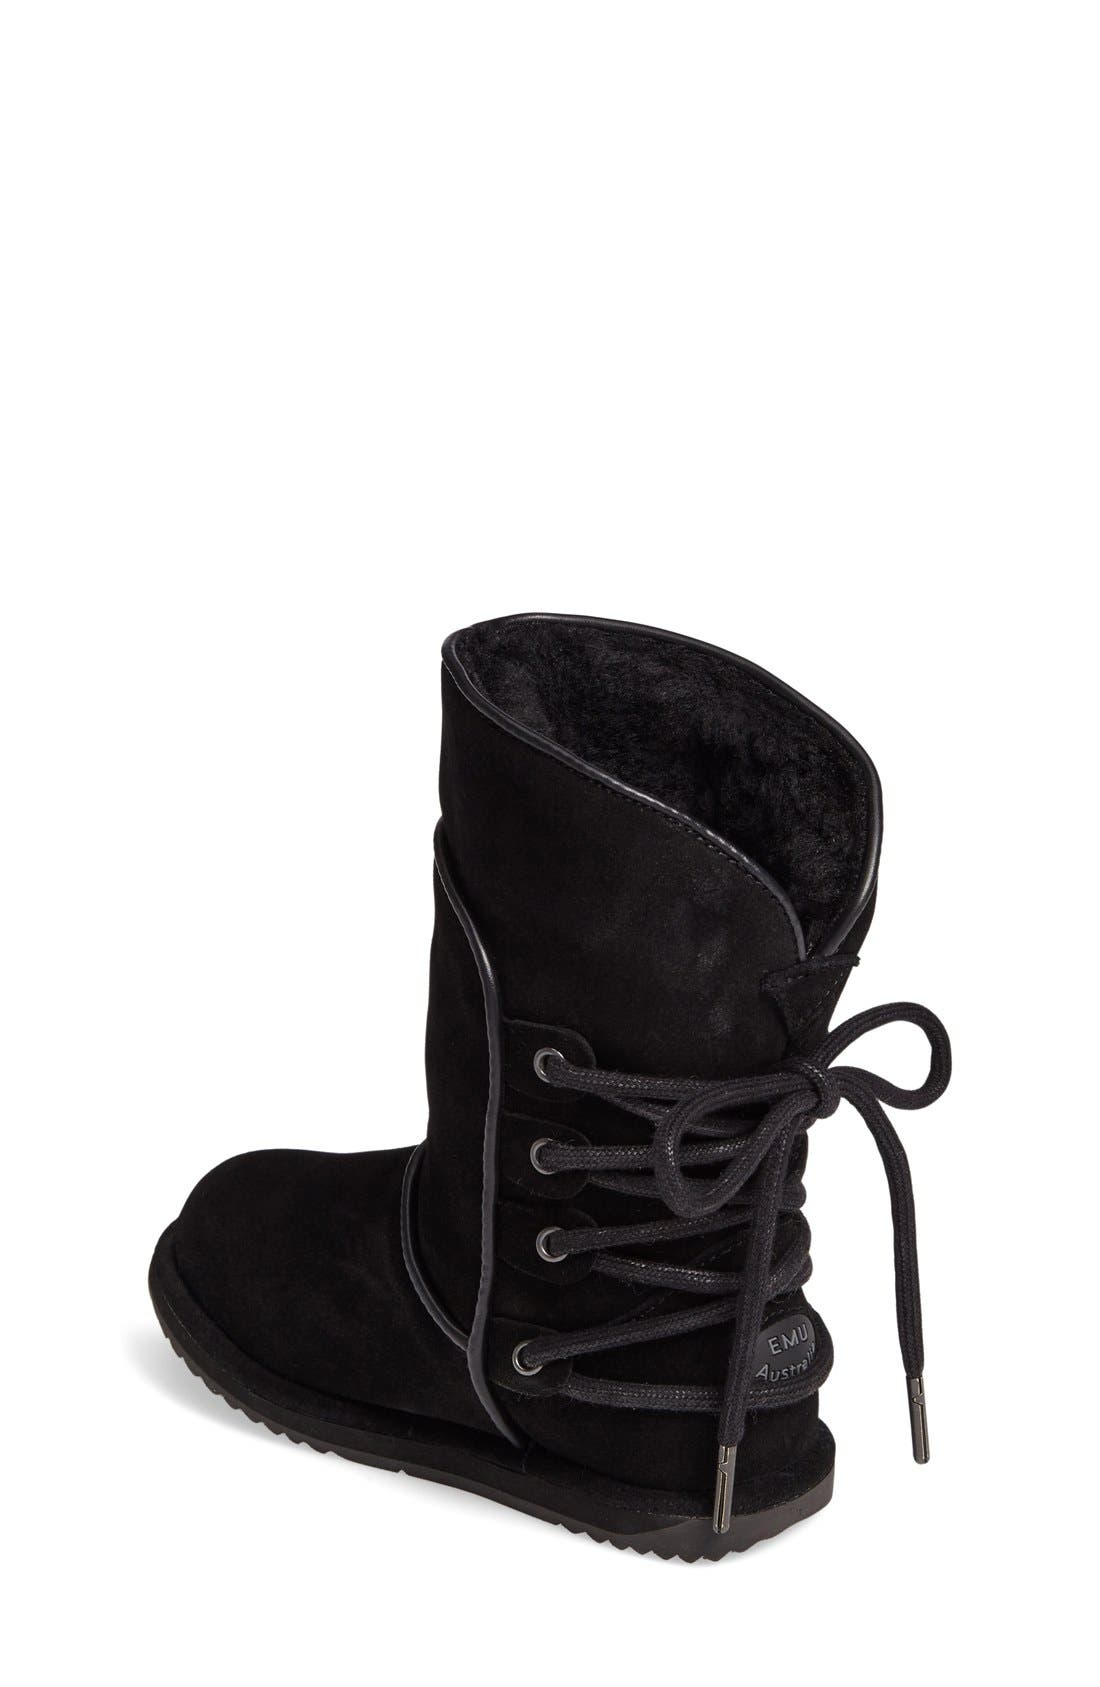 Islay Waterproof Boot,                             Alternate thumbnail 4, color,                             001